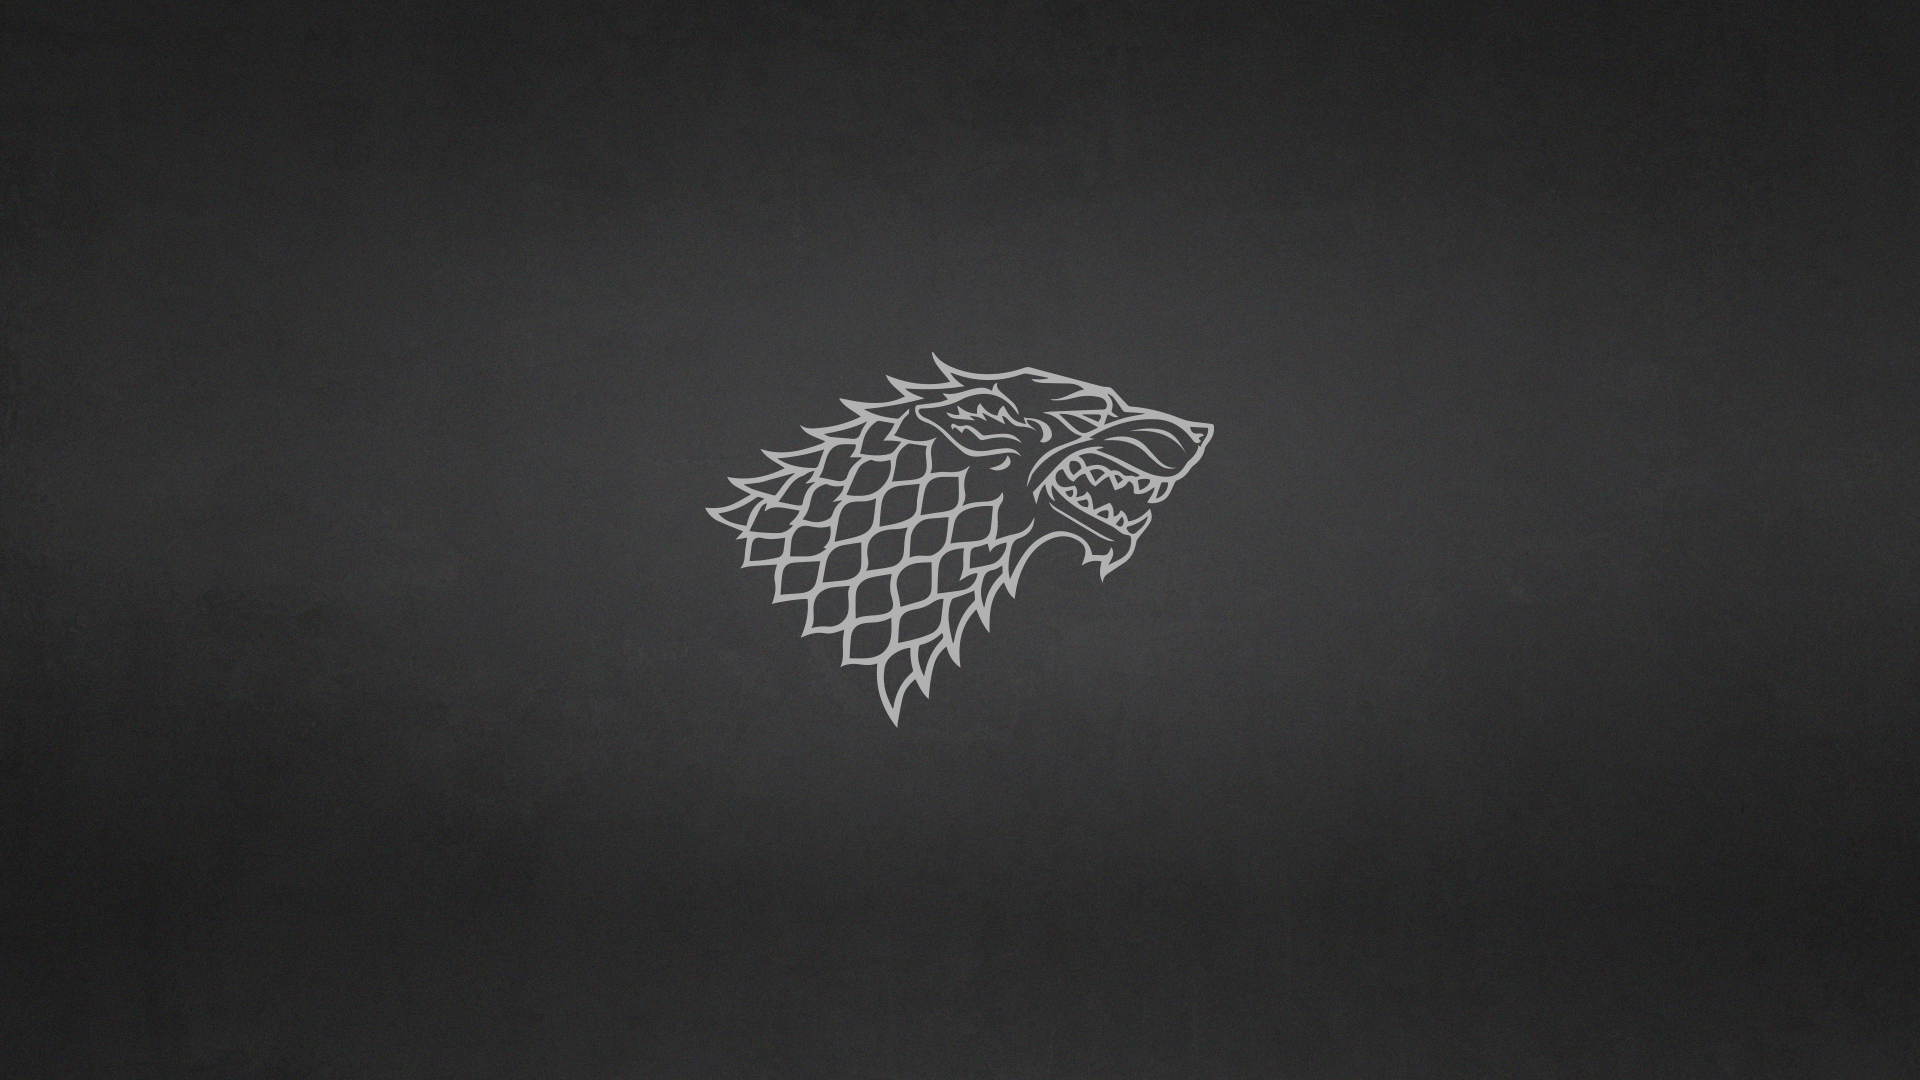 Game Of Thrones House Stark Minimalist Wallpaper By Elbarnzo On